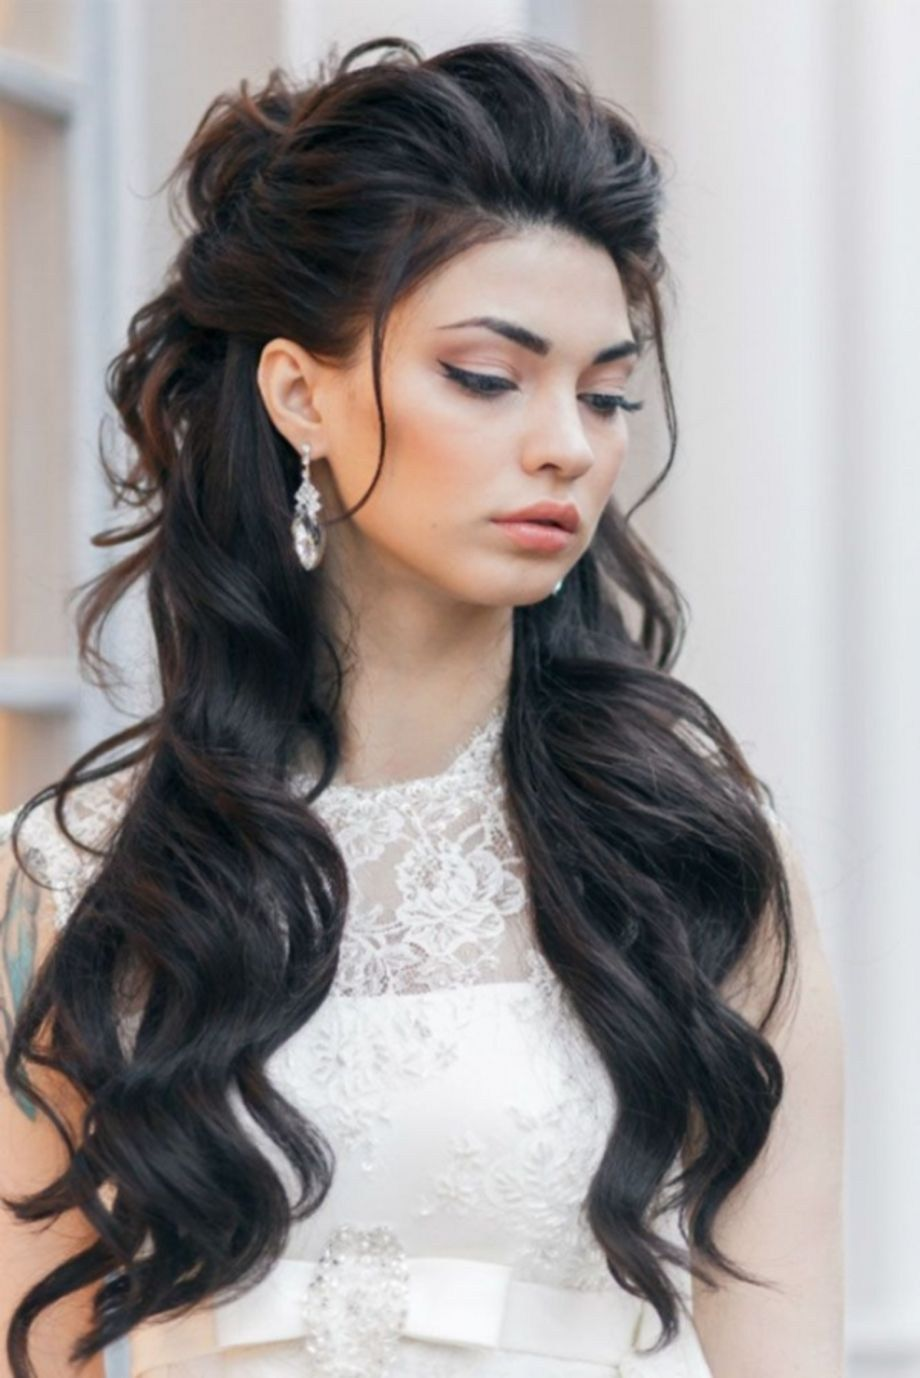 55 Beautiful Wedding Hairstyle Ideas With Bangs For Long Hair | Wedding hairstyles, Half updo ...